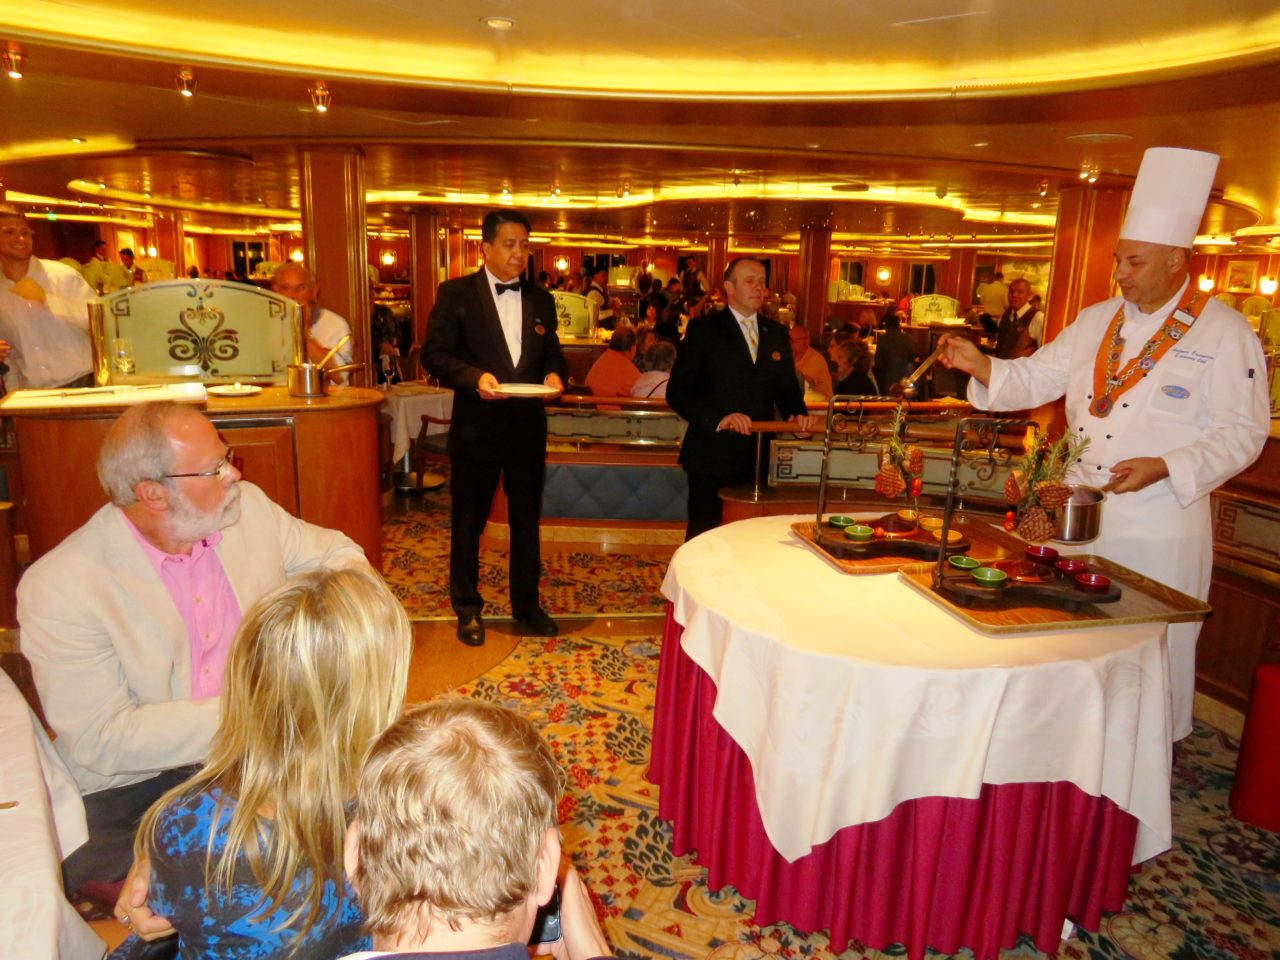 Executive Chef of Star Princess cruise ship preparing food for the Chef's Table during our Alaska Cruise with Princess Cruises